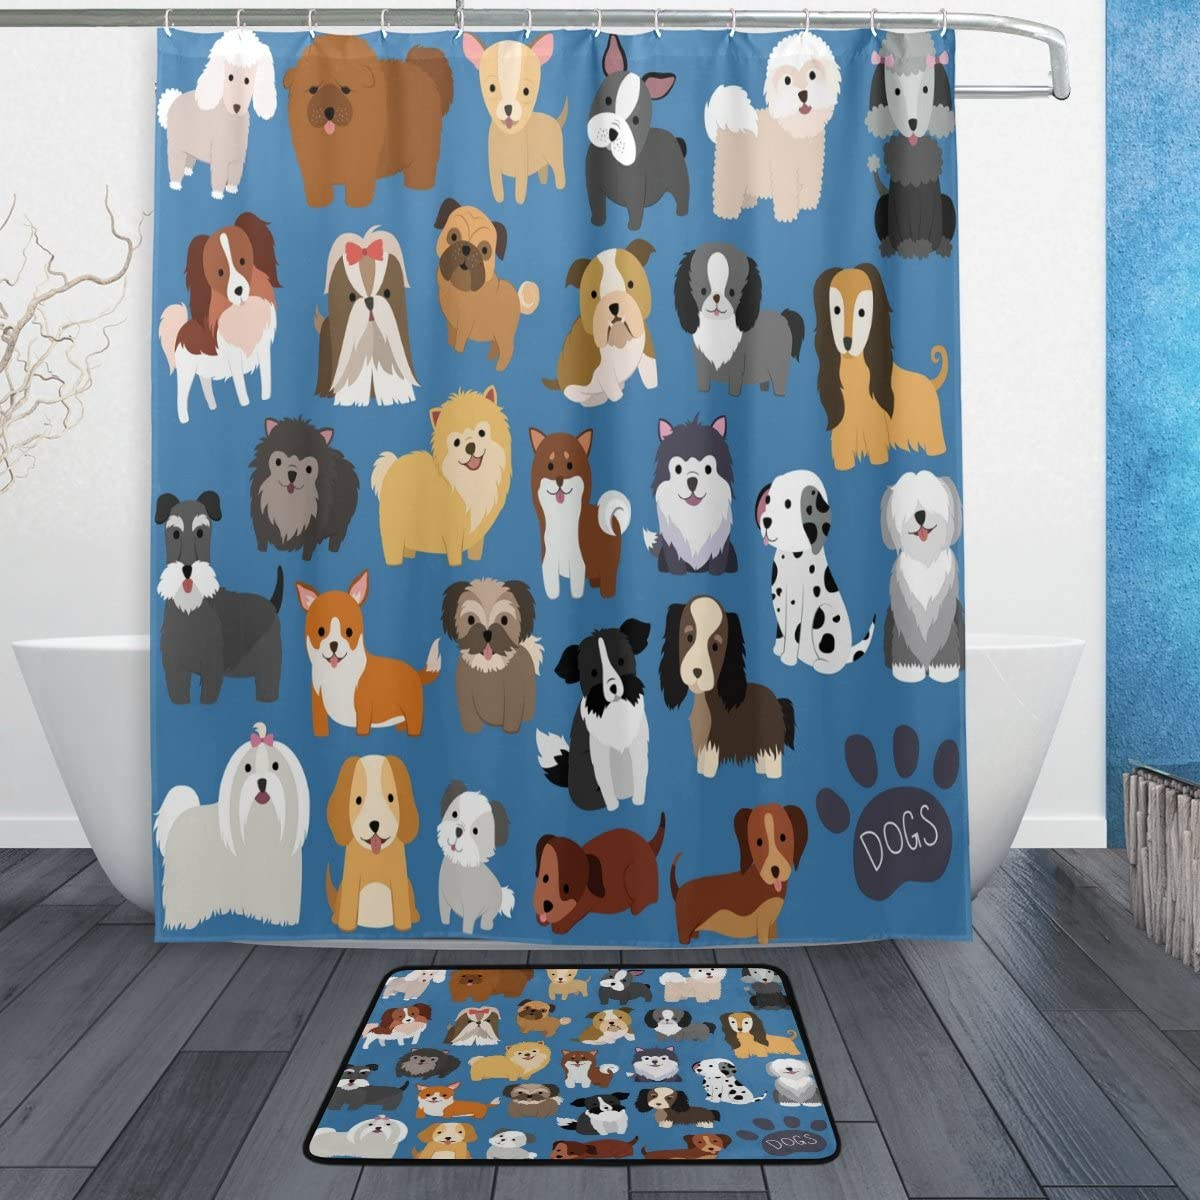 Alaza Set Of 2 Cute Animal Dog 60 X 72 Inches Shower Curtain And Mat Set Lovely Puppy Dogs Waterproof Fabric Bathroom Curtain And Rug Set With Hooks Home Kitchen